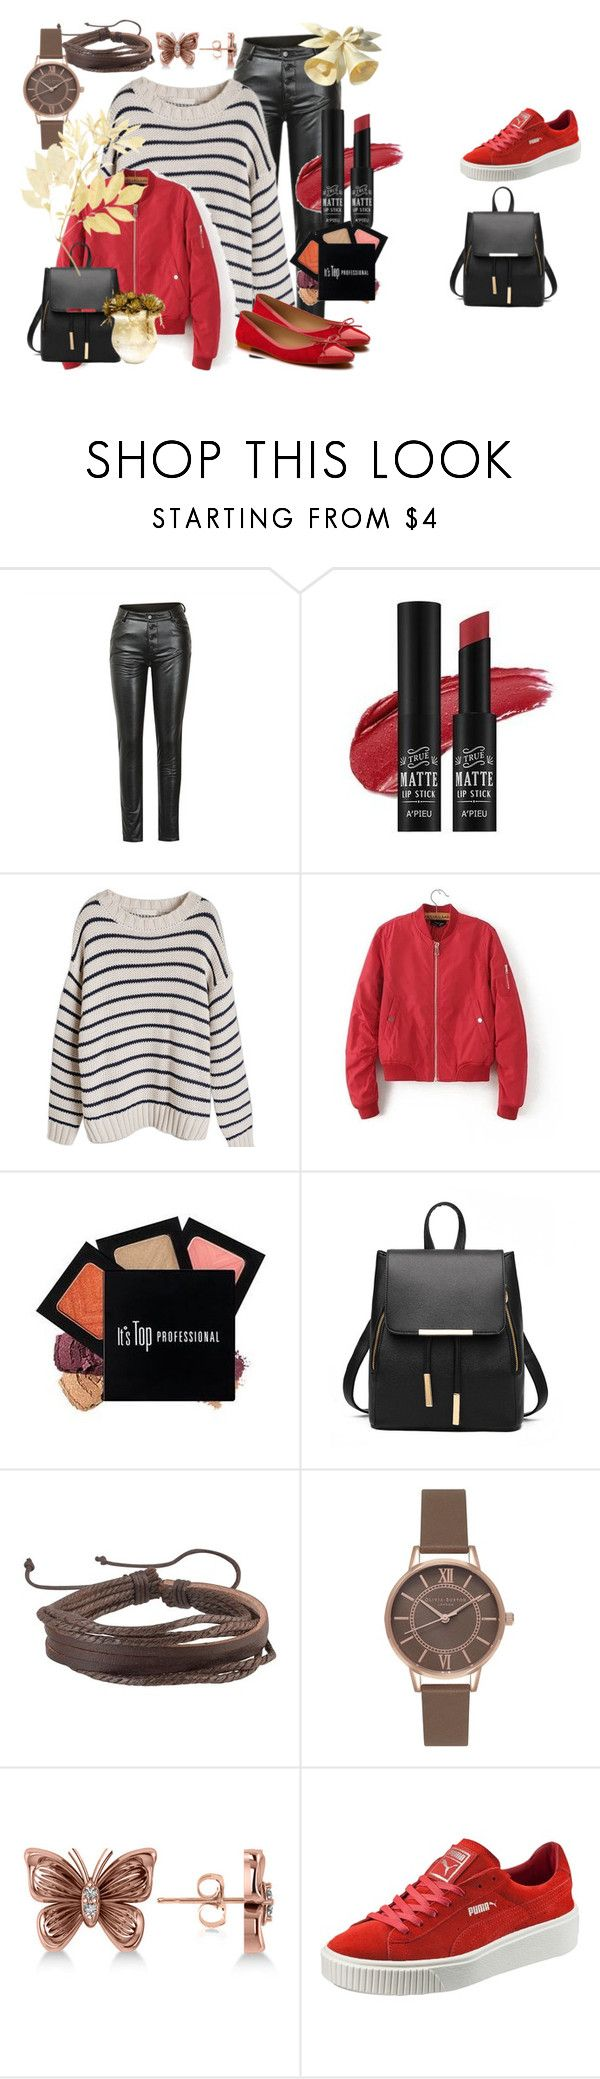 """Cyber Monday Sale - YesStyle - win $40 Coupon"" by patkova-v ❤ liked on Polyvore featuring Flore, Chicsense, Zodaca, Olivia Burton, Allurez, Puma and Shoes of Prey https://ladieshighheelshoes.blogspot.com/2016/12/cheap-dolce-gabbana-suede-high-heel.html"